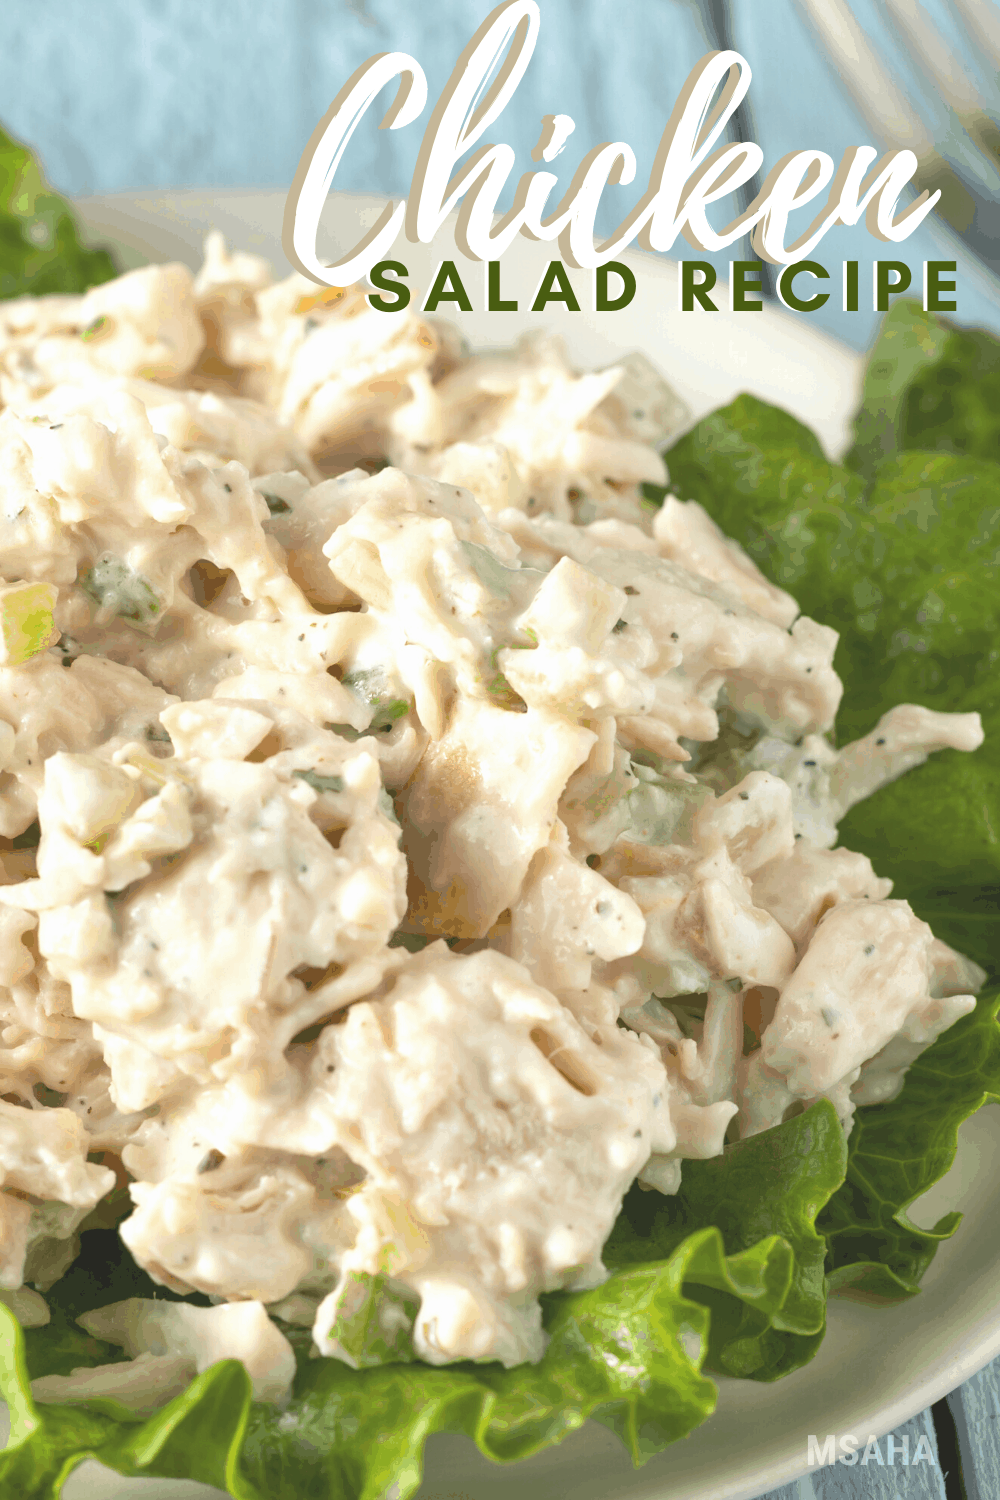 This easy chicken salad recipe is made with cooked chicken, celery, hard-boiled egg, relish, mayo, and Greek seasoning. #chickensalad #easychickensalad #salad #chickenrecipe via @mystayathome